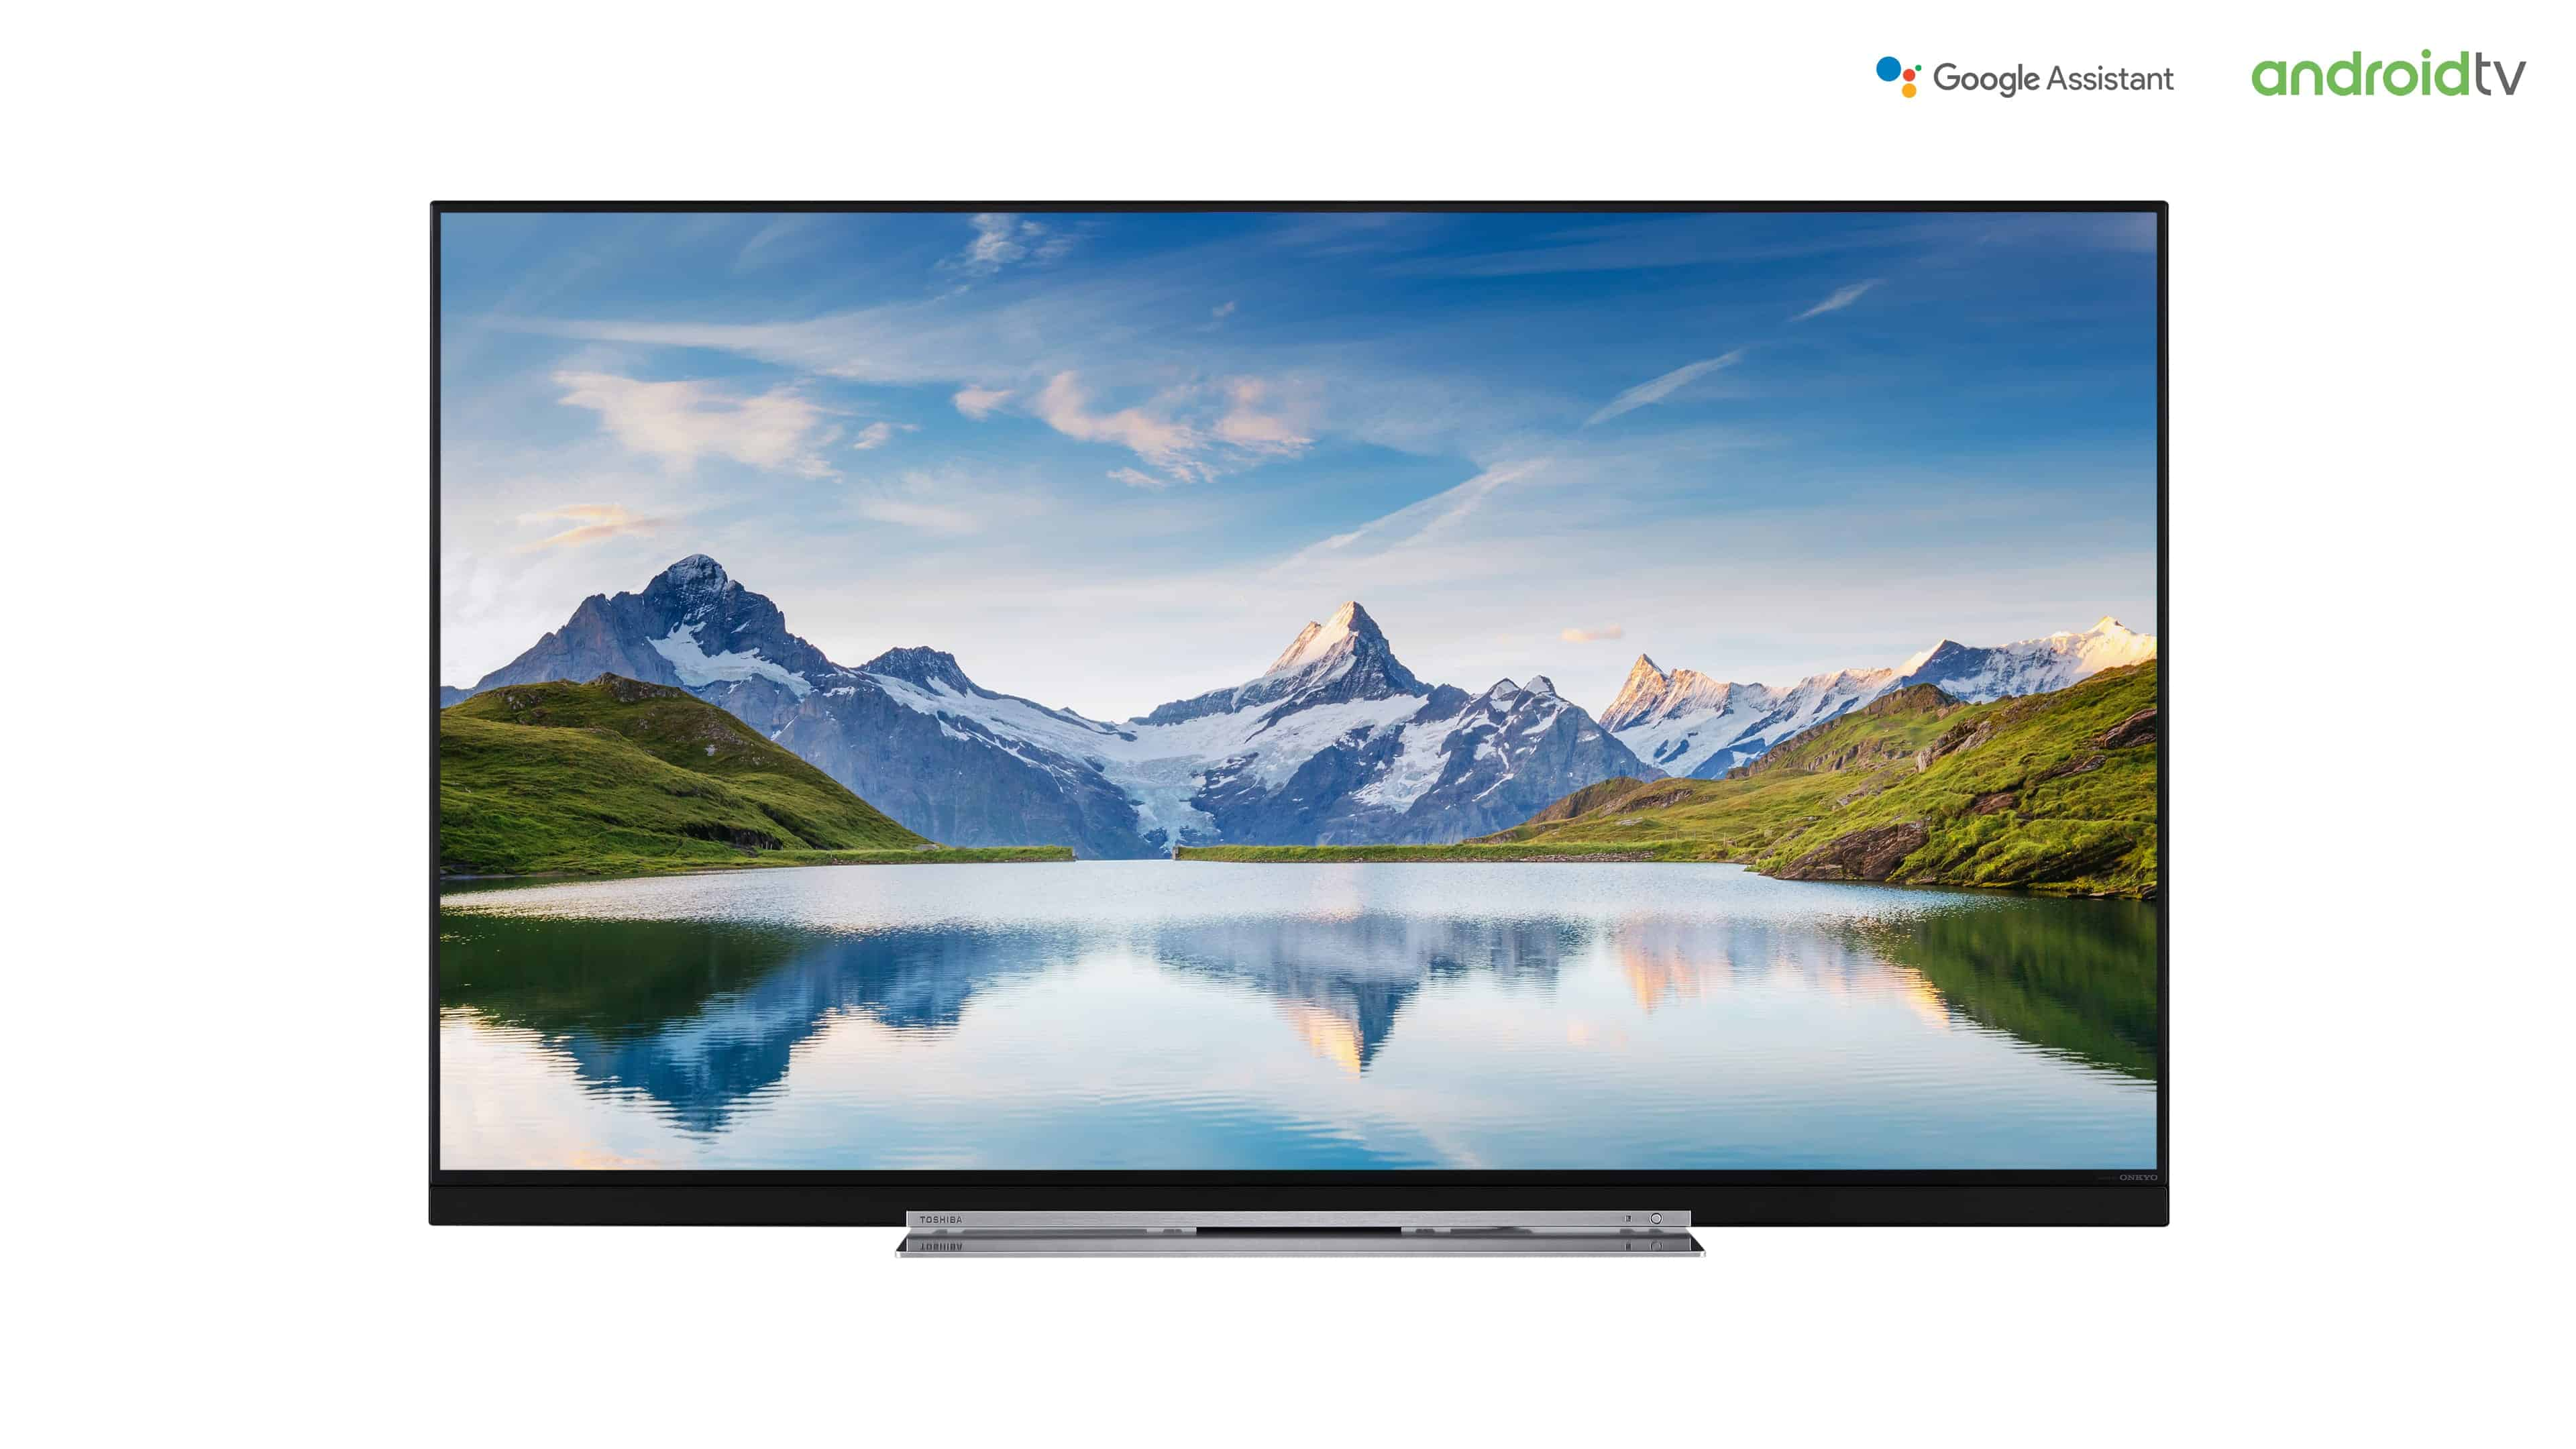 Toshiba Launches 55-inch 4K HDR Android TV Set – IFA 2018